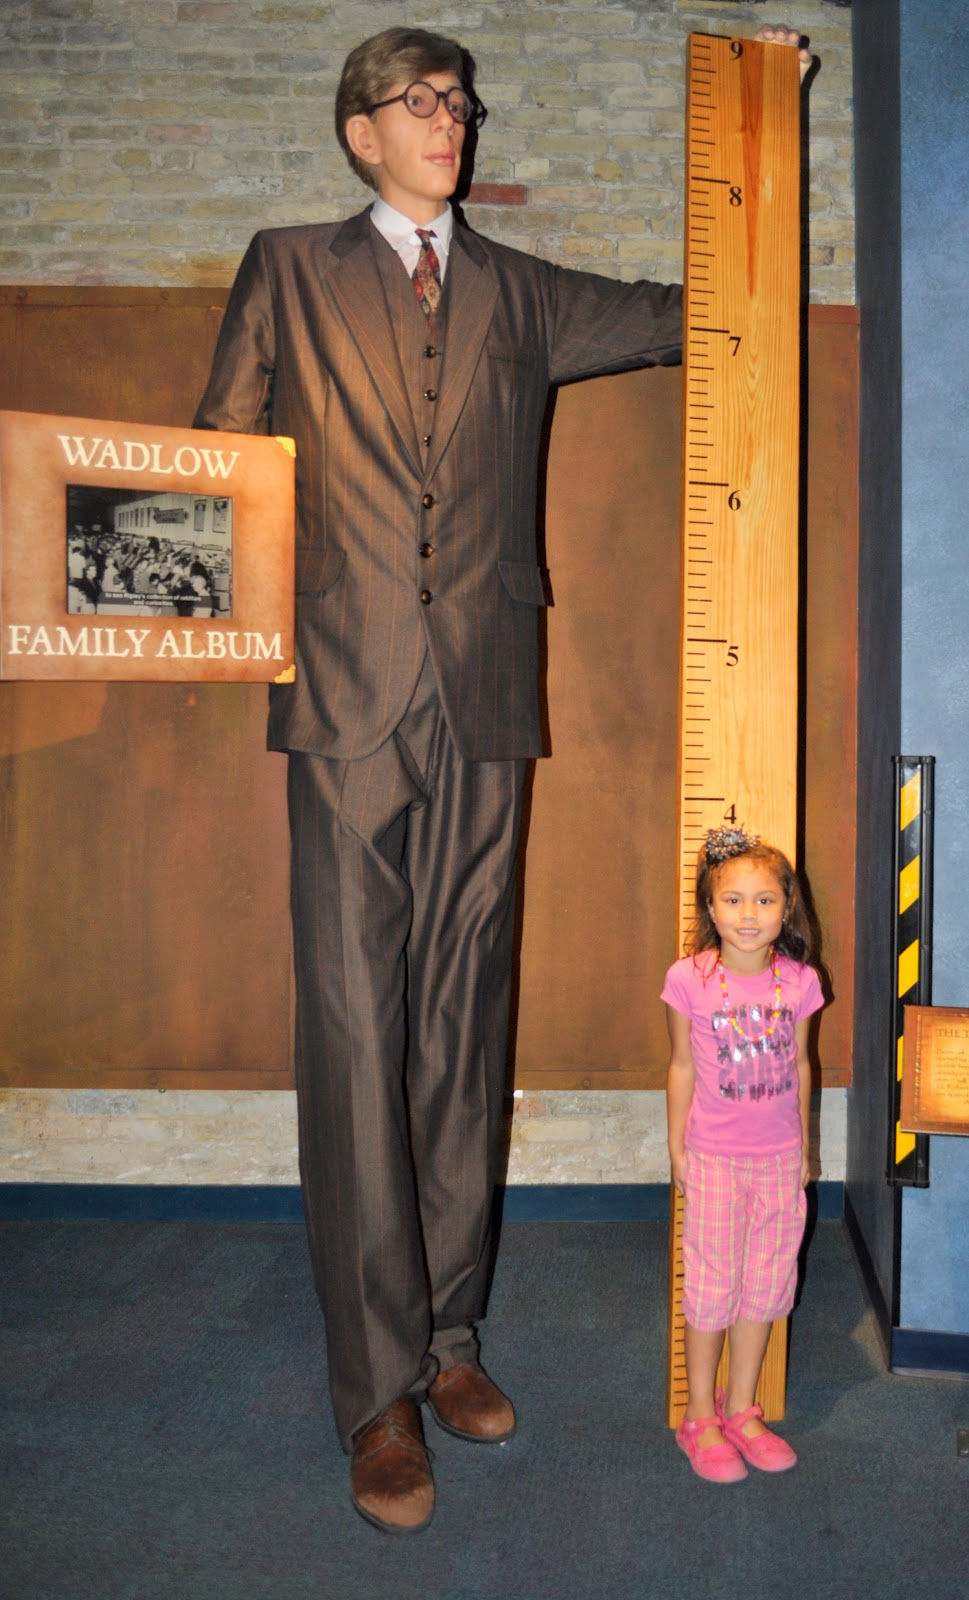 Robert Wadlow ~ The Dias Family Adventures